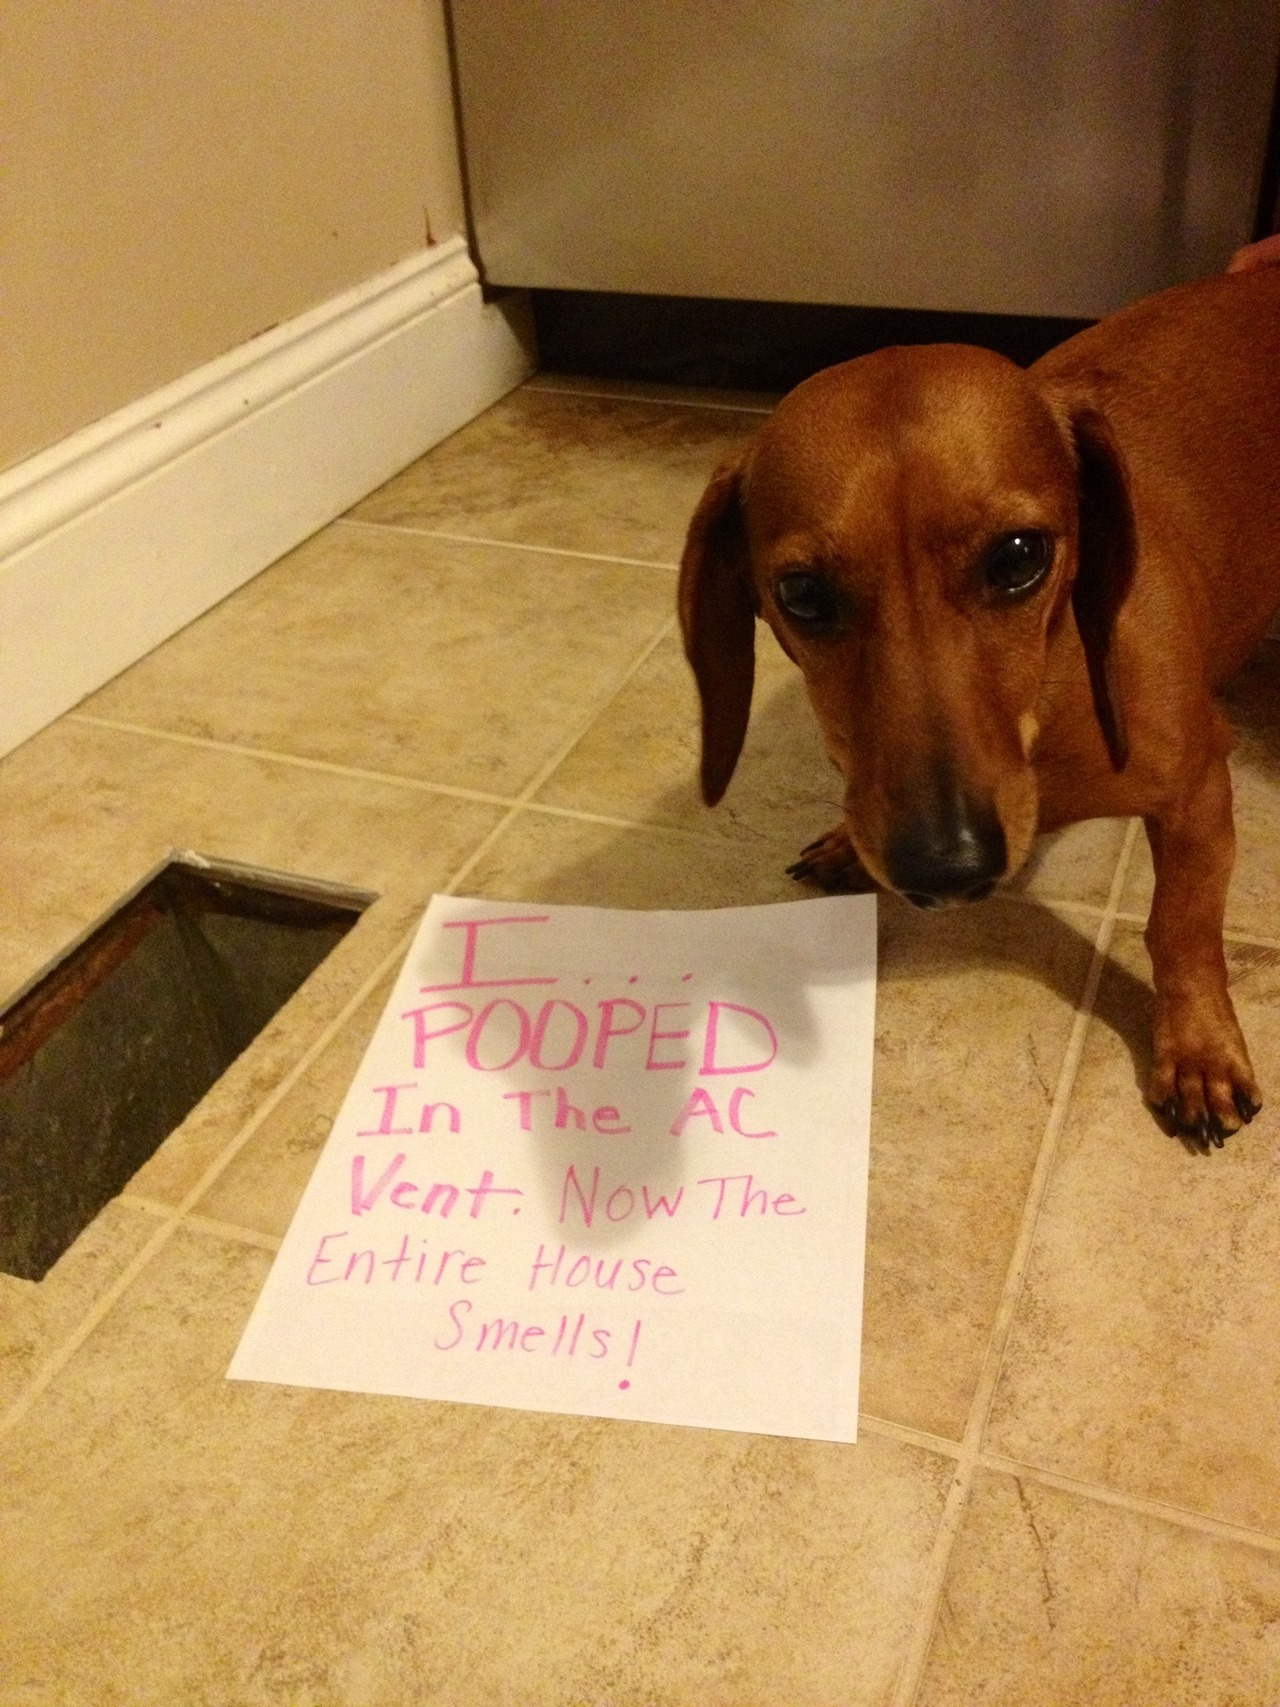 I Pooped In The A/C Vent And Now The Entire House Smells - Dogshaming | Dogs Pooping In The House